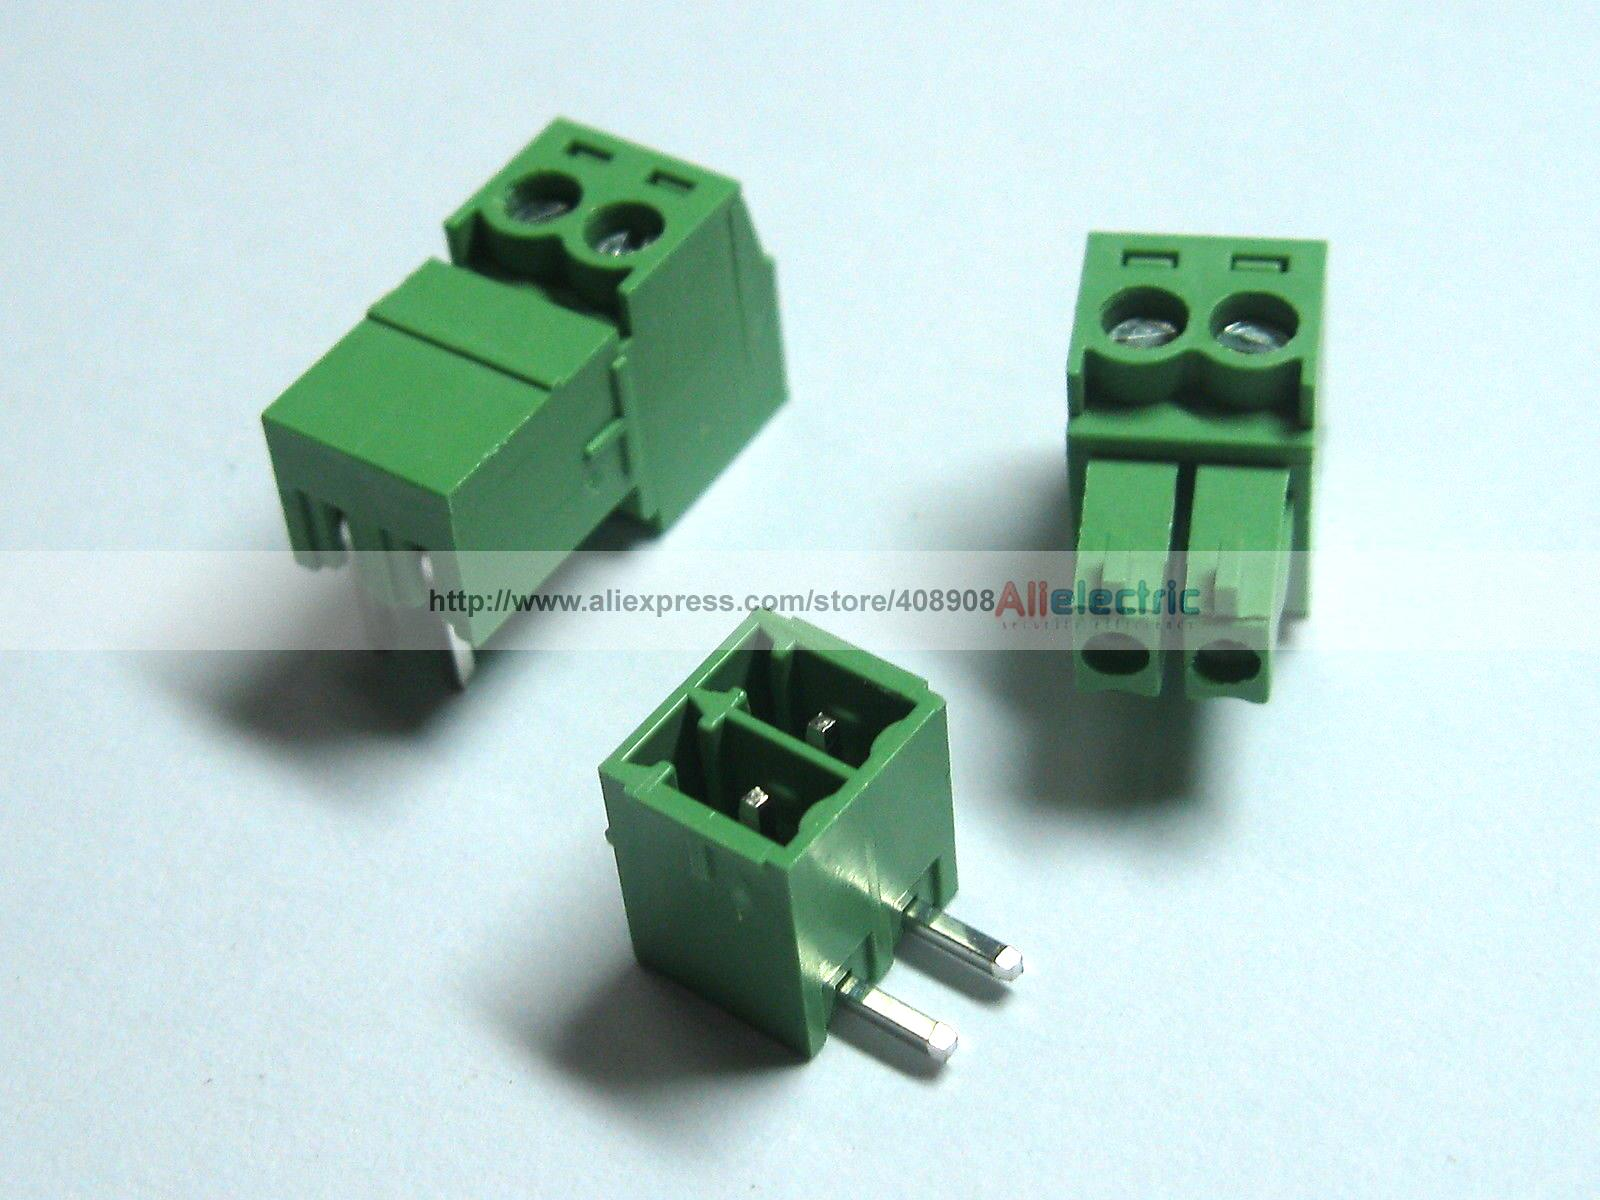 ФОТО 150 Pcs Screw Terminal Block Connector 3.81mm Angle 2 Pin Green Pluggable Type